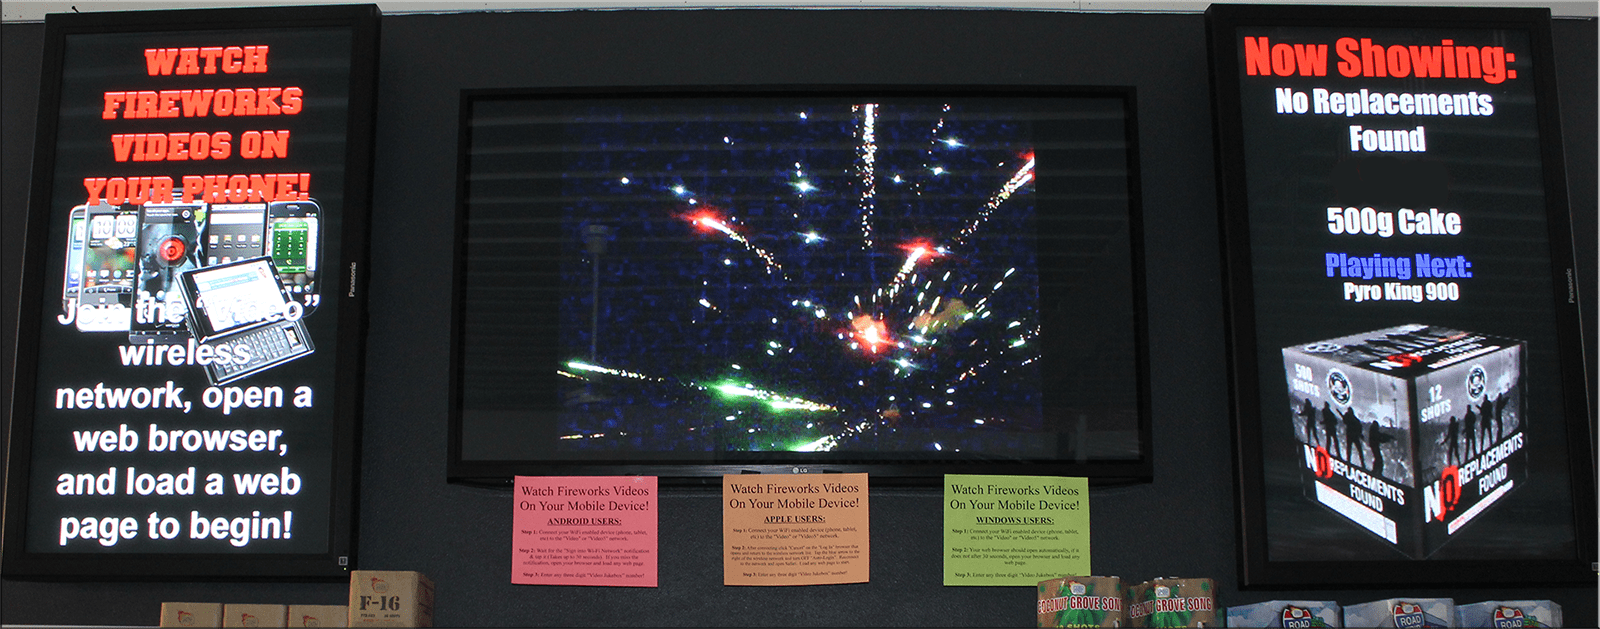 Wisconsin Fireworks Video Wall